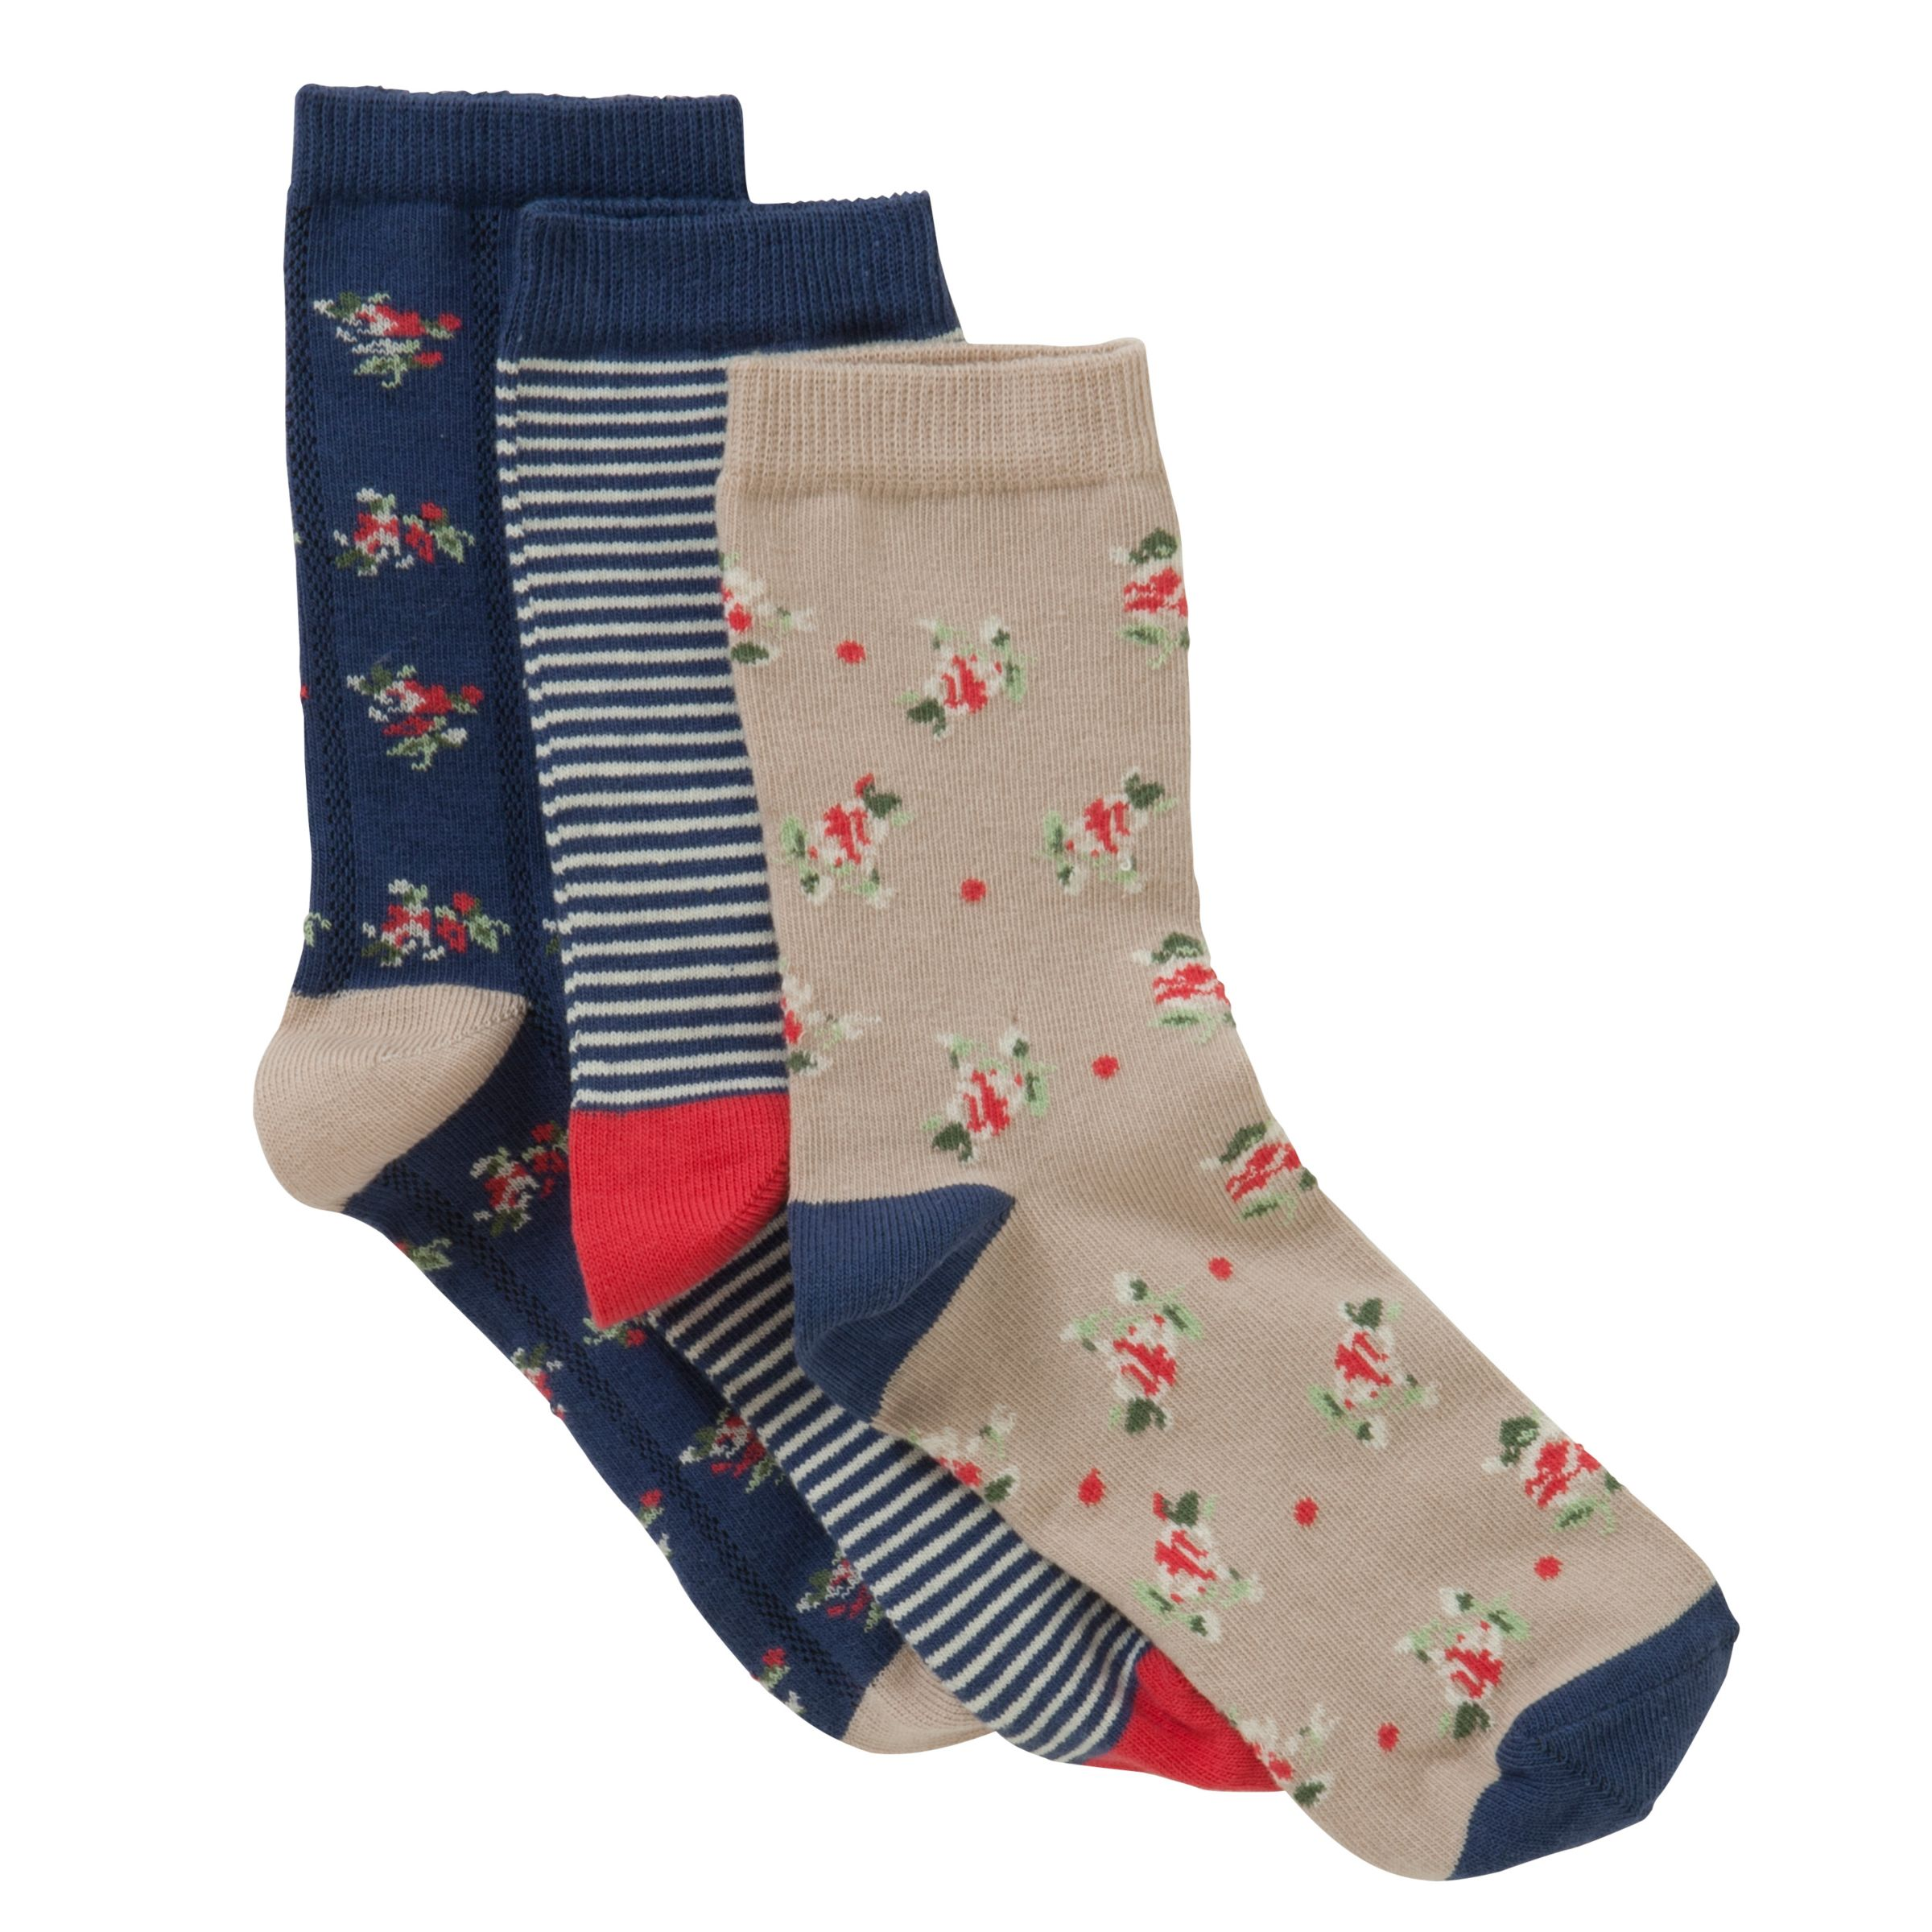 John Lewis Stripes and Floral Ankle Socks, Pack of 3, Multi